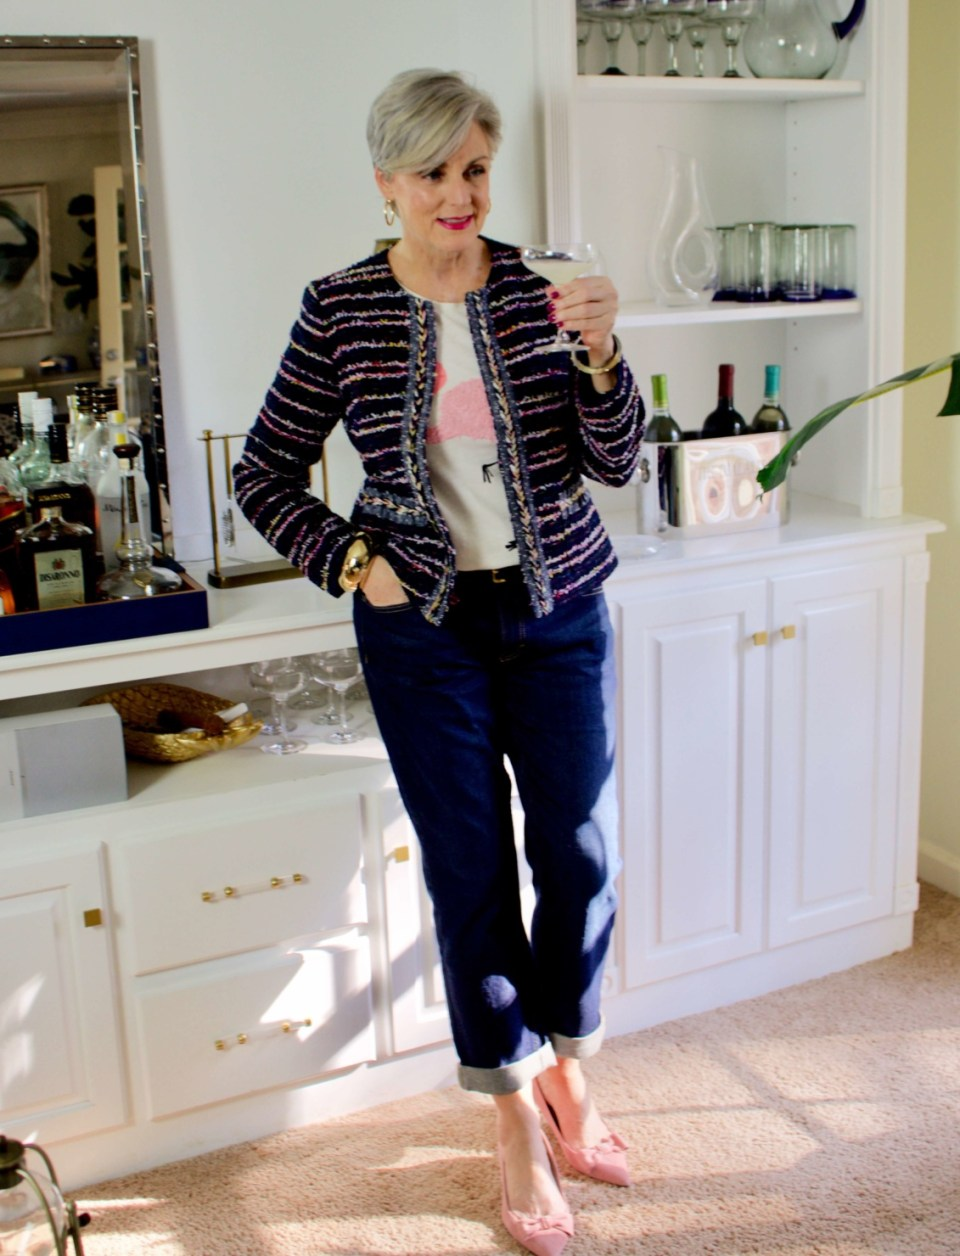 beth from Style at a Certain Age wears boyfriend jeans, graphic tee, tweed blazer and pink kitten heels